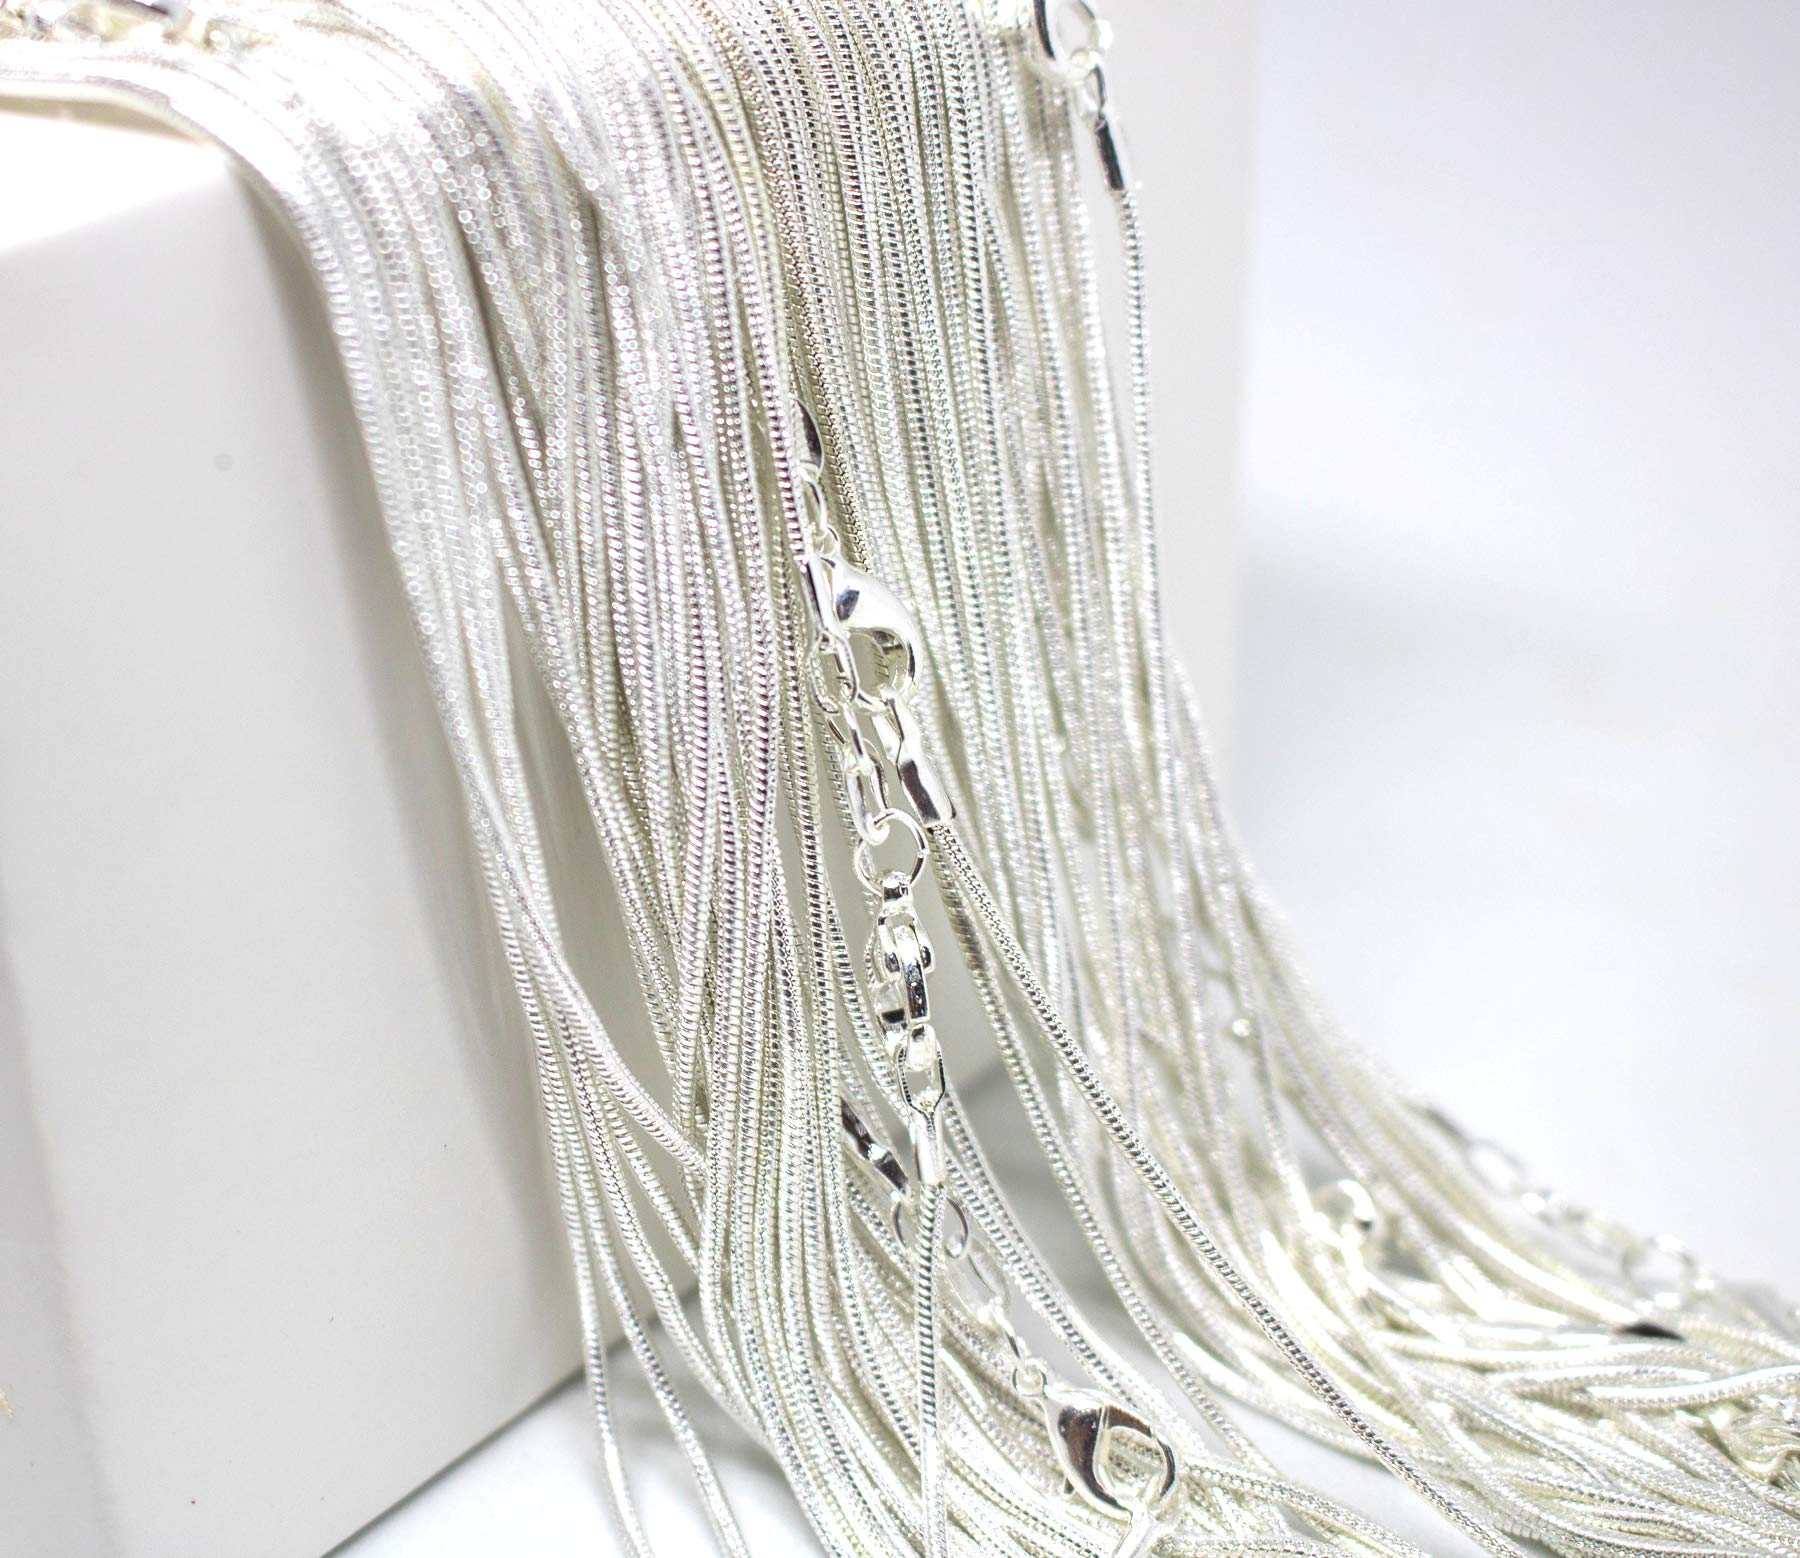 24 Inch Snake Chains Pack of 10 - Sterling Silver 925 Snake Chains Bulk - Sterling Silver Plated Chains for Jewelry Making - Top Quality USA Seller Maddie's Pearls (24 Inch, 10 Chains) by Maddie's Pearls